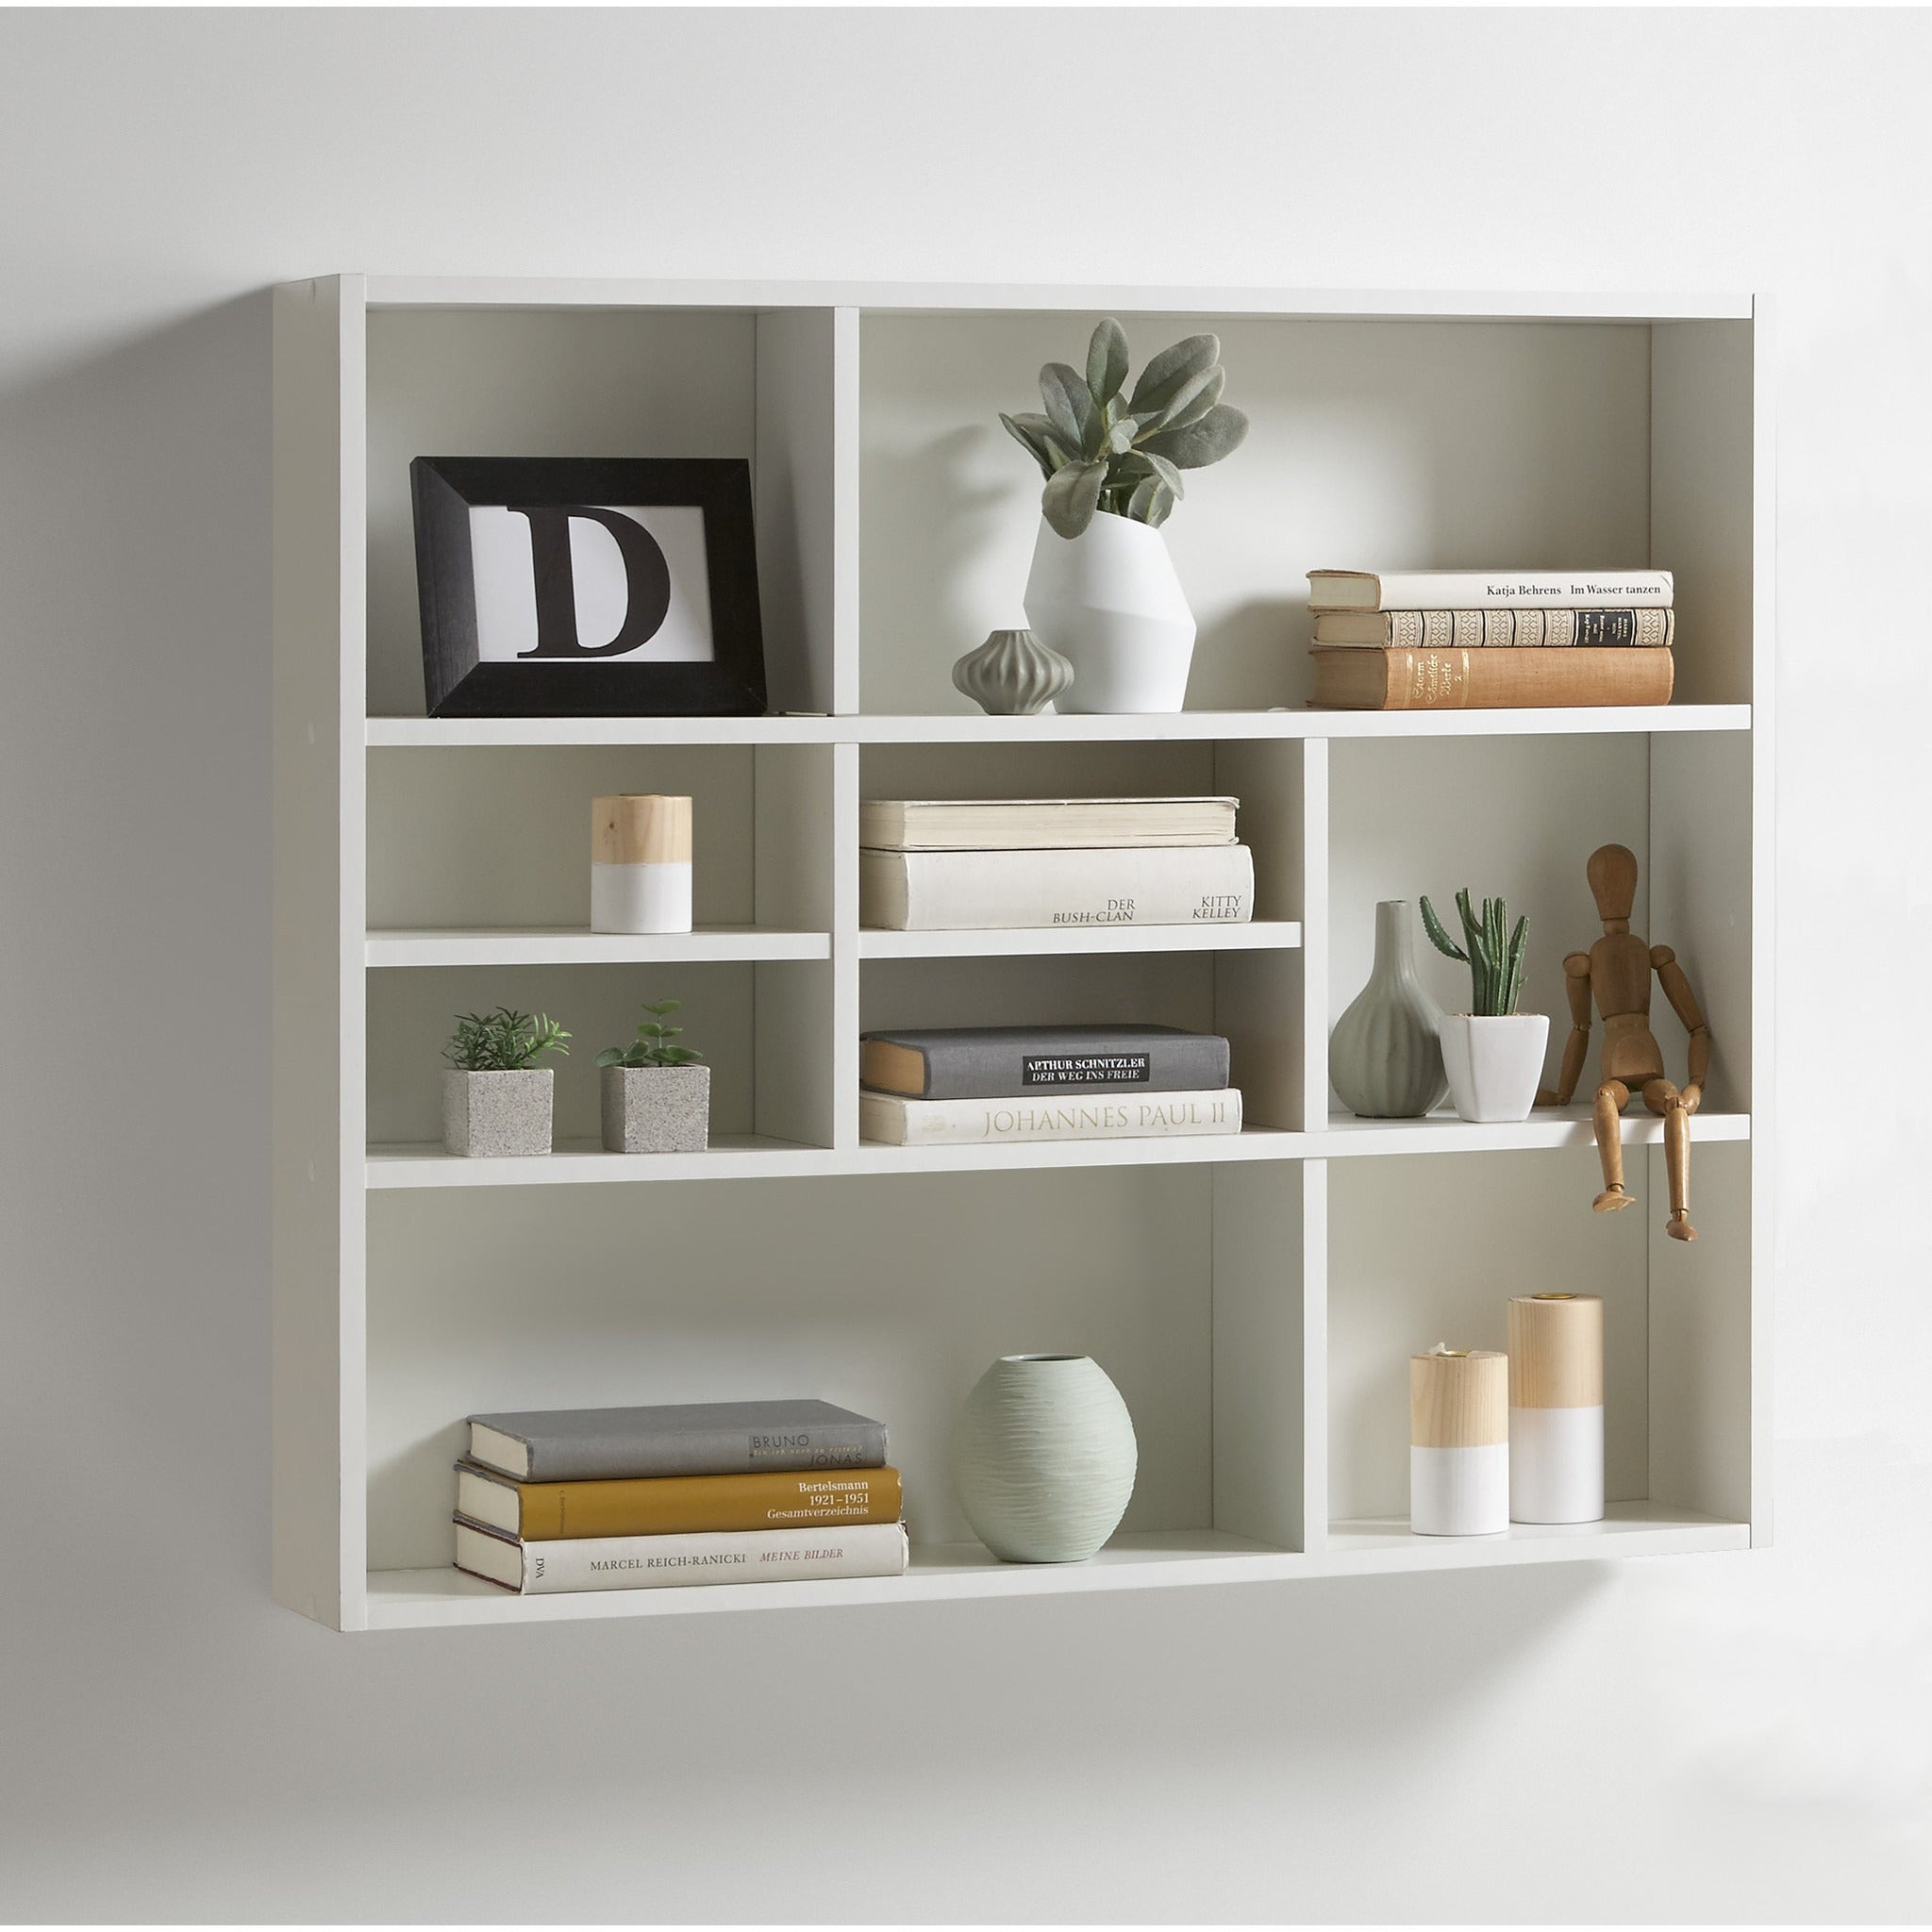 mika display shelving decorative designer wall shelf freedom homestore. Black Bedroom Furniture Sets. Home Design Ideas